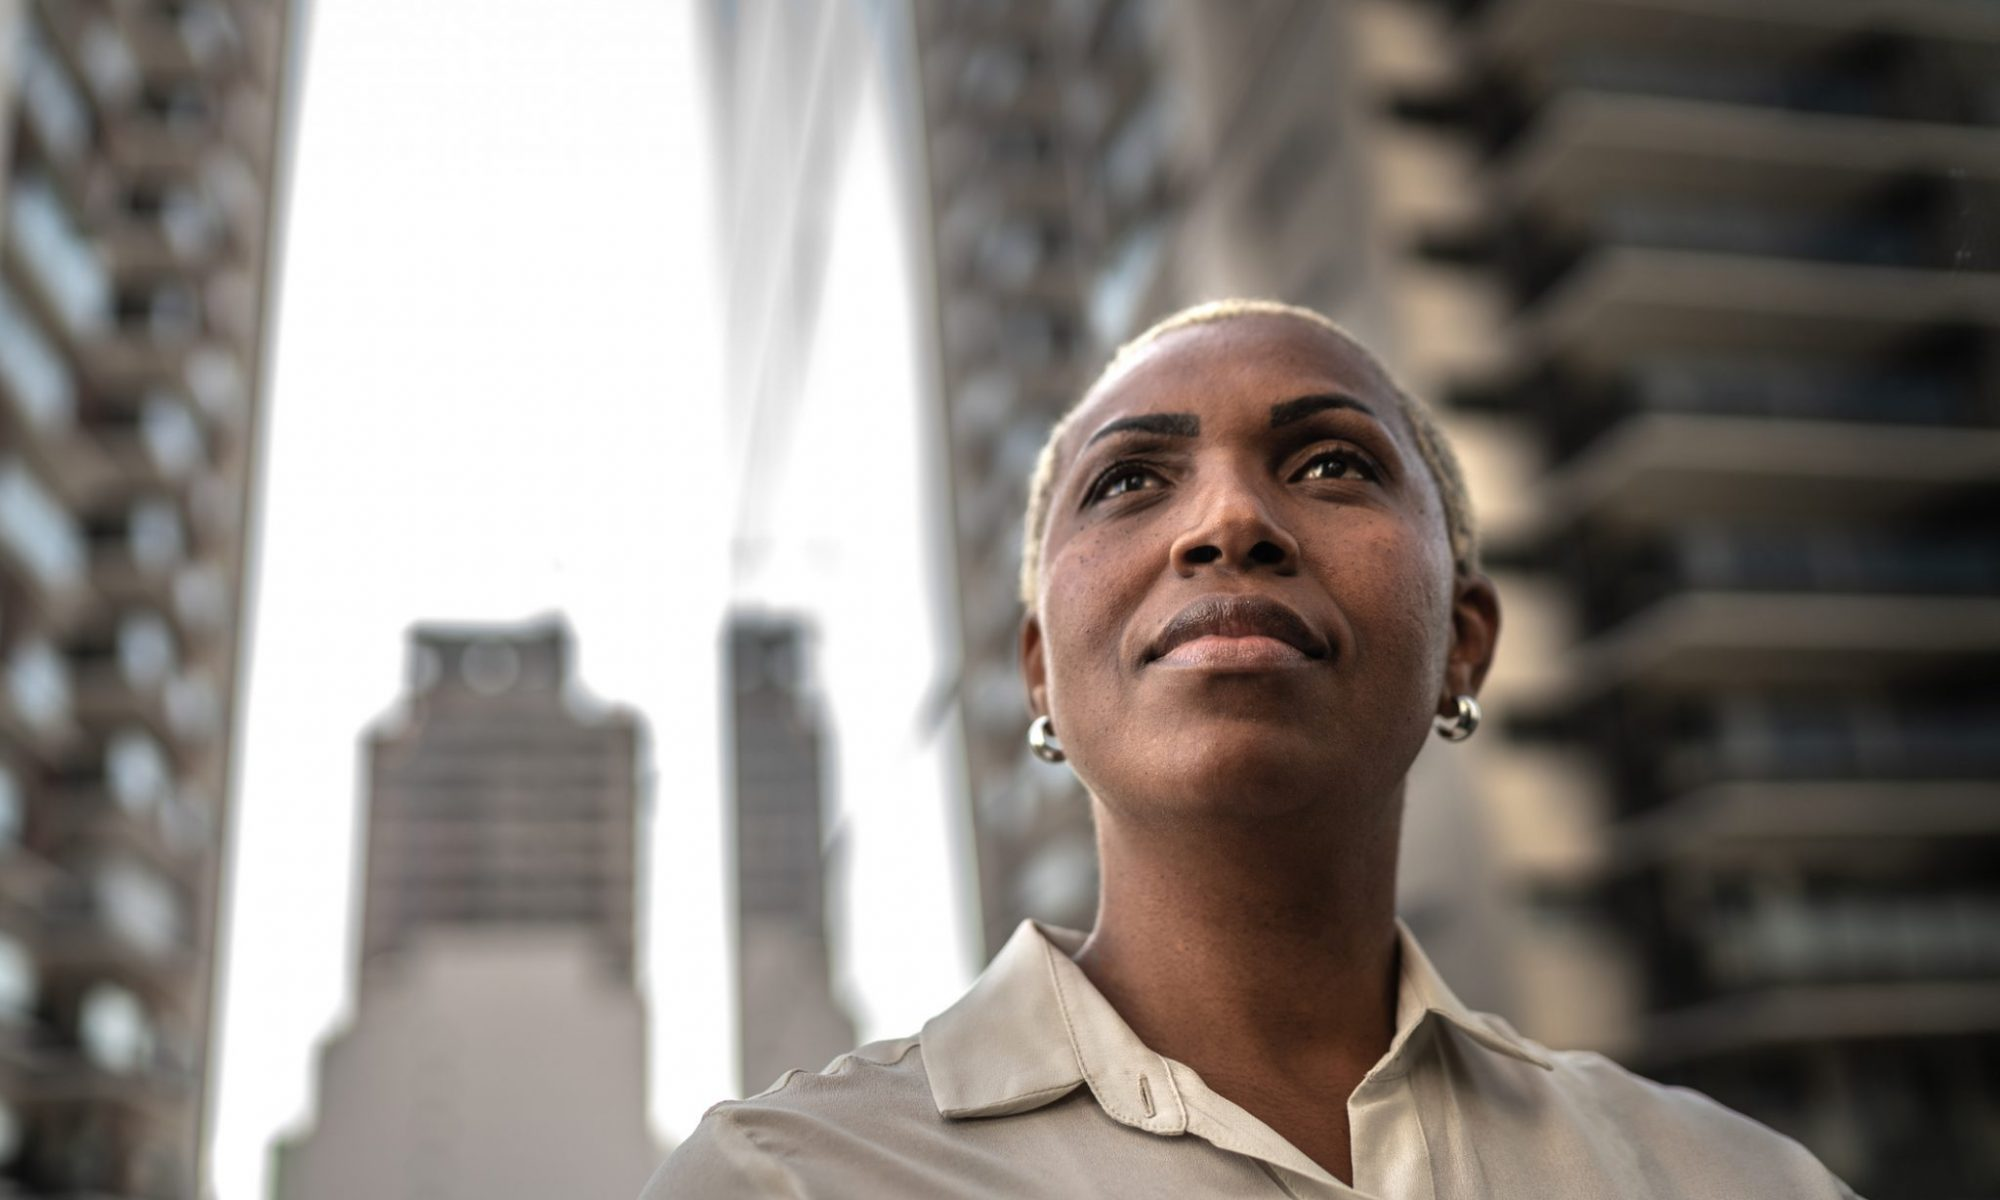 Here is a person with short blonde hair and dark skin wearing small hooped earing looking upwards with curiosity. This individual is wearing a silky sand coloured shirt with an unbuttoned collar.